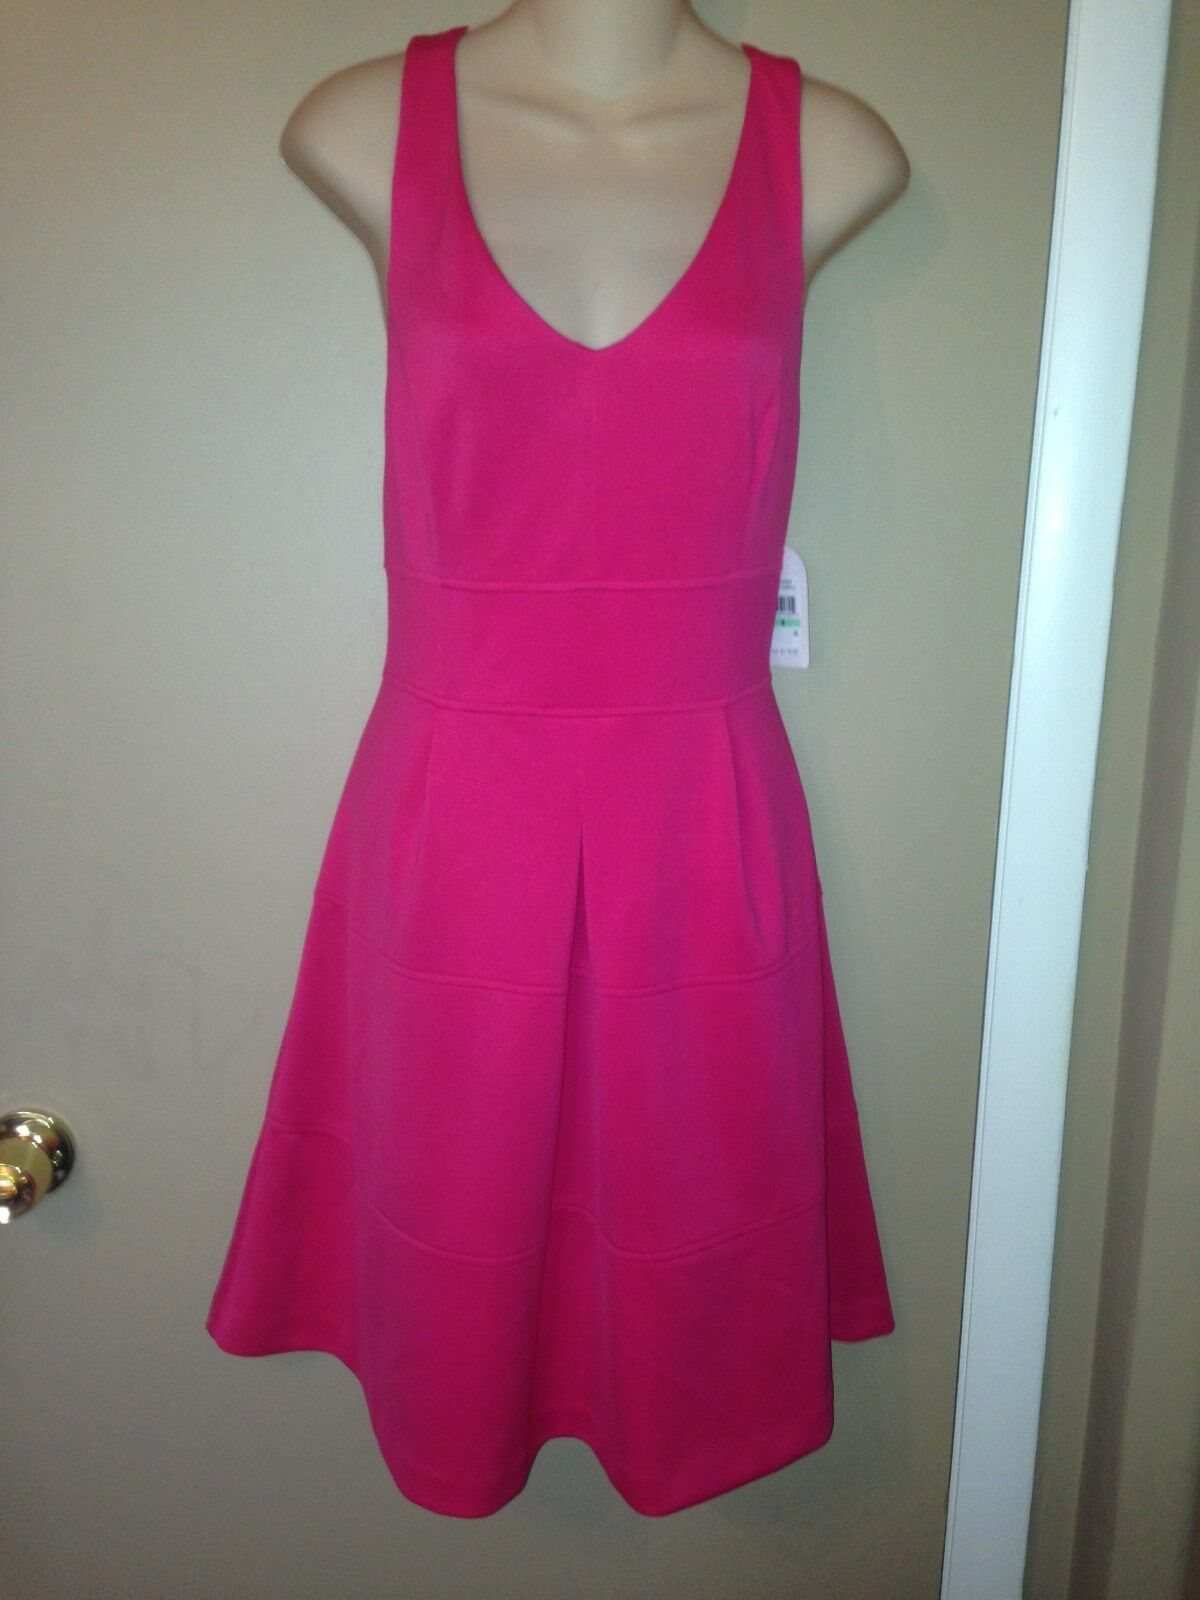 JESSICA SIMPSON LADIES PINK DRESS SIZE 8, NEW WITH TAG